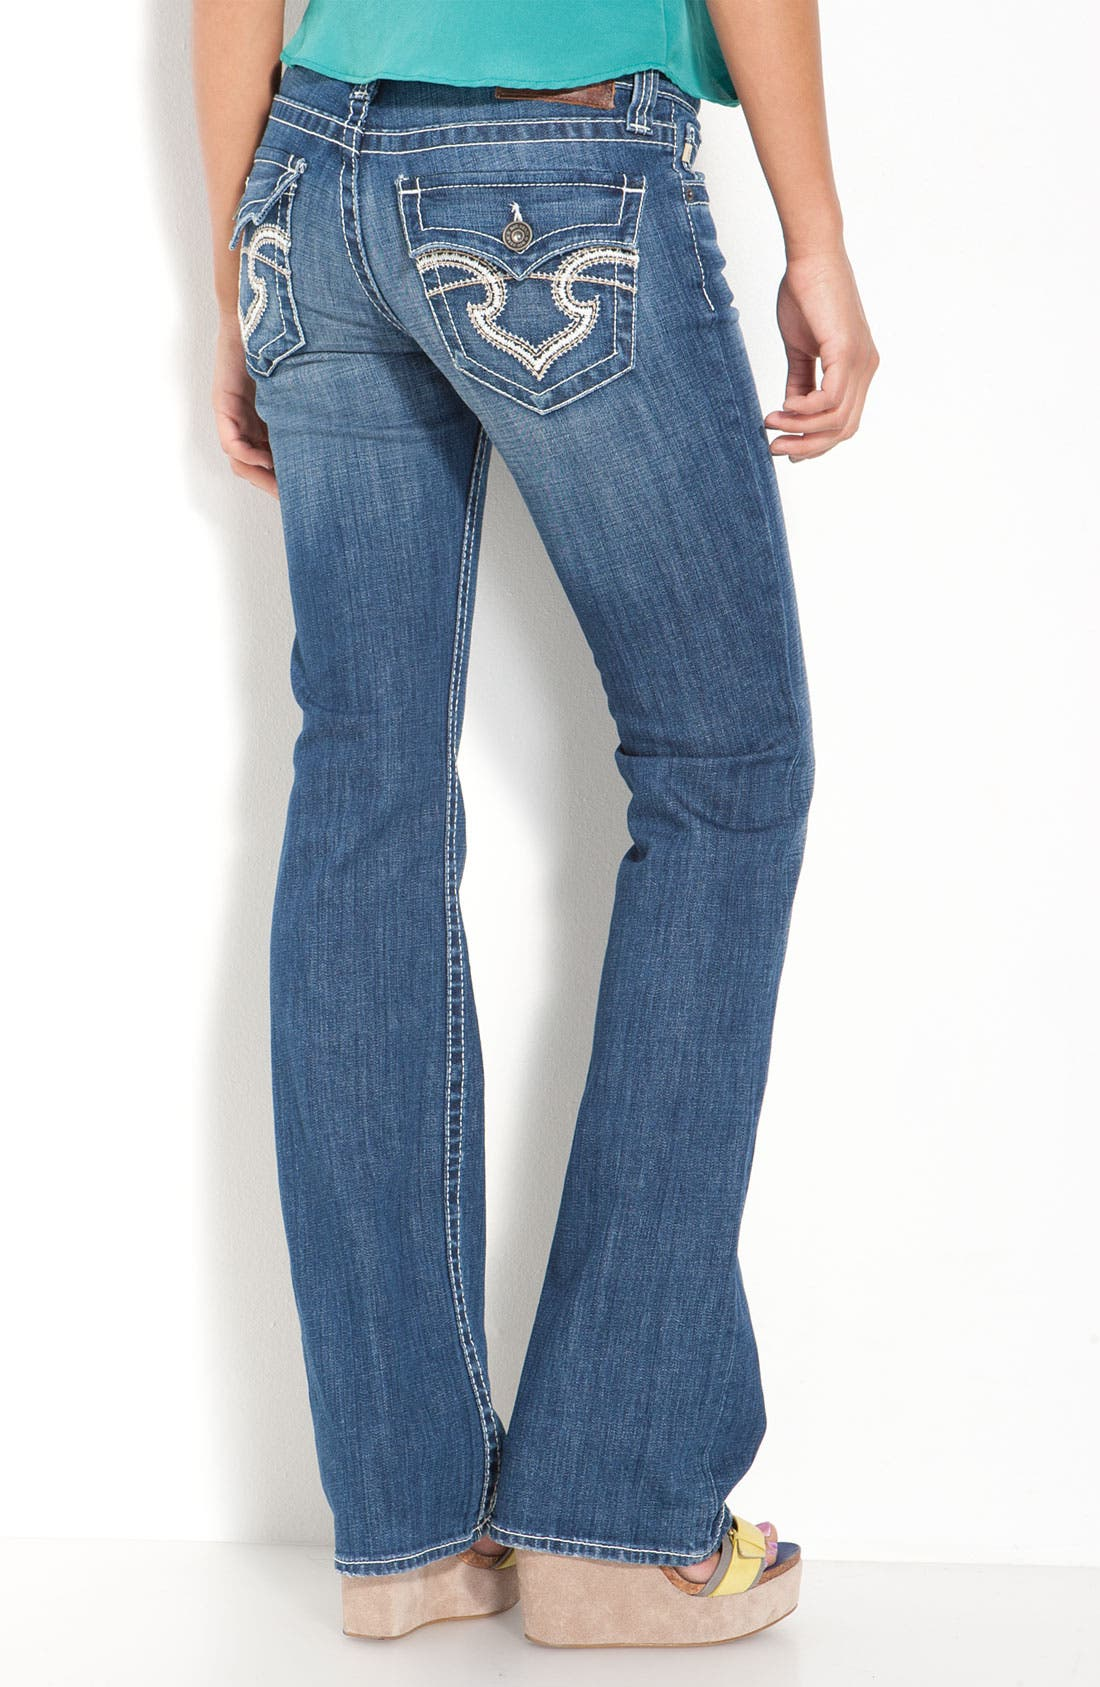 Alternate Image 1 Selected - Big Star 'Remy' Bootcut Jeans (Junction Wash) (Juniors Regular & Long)